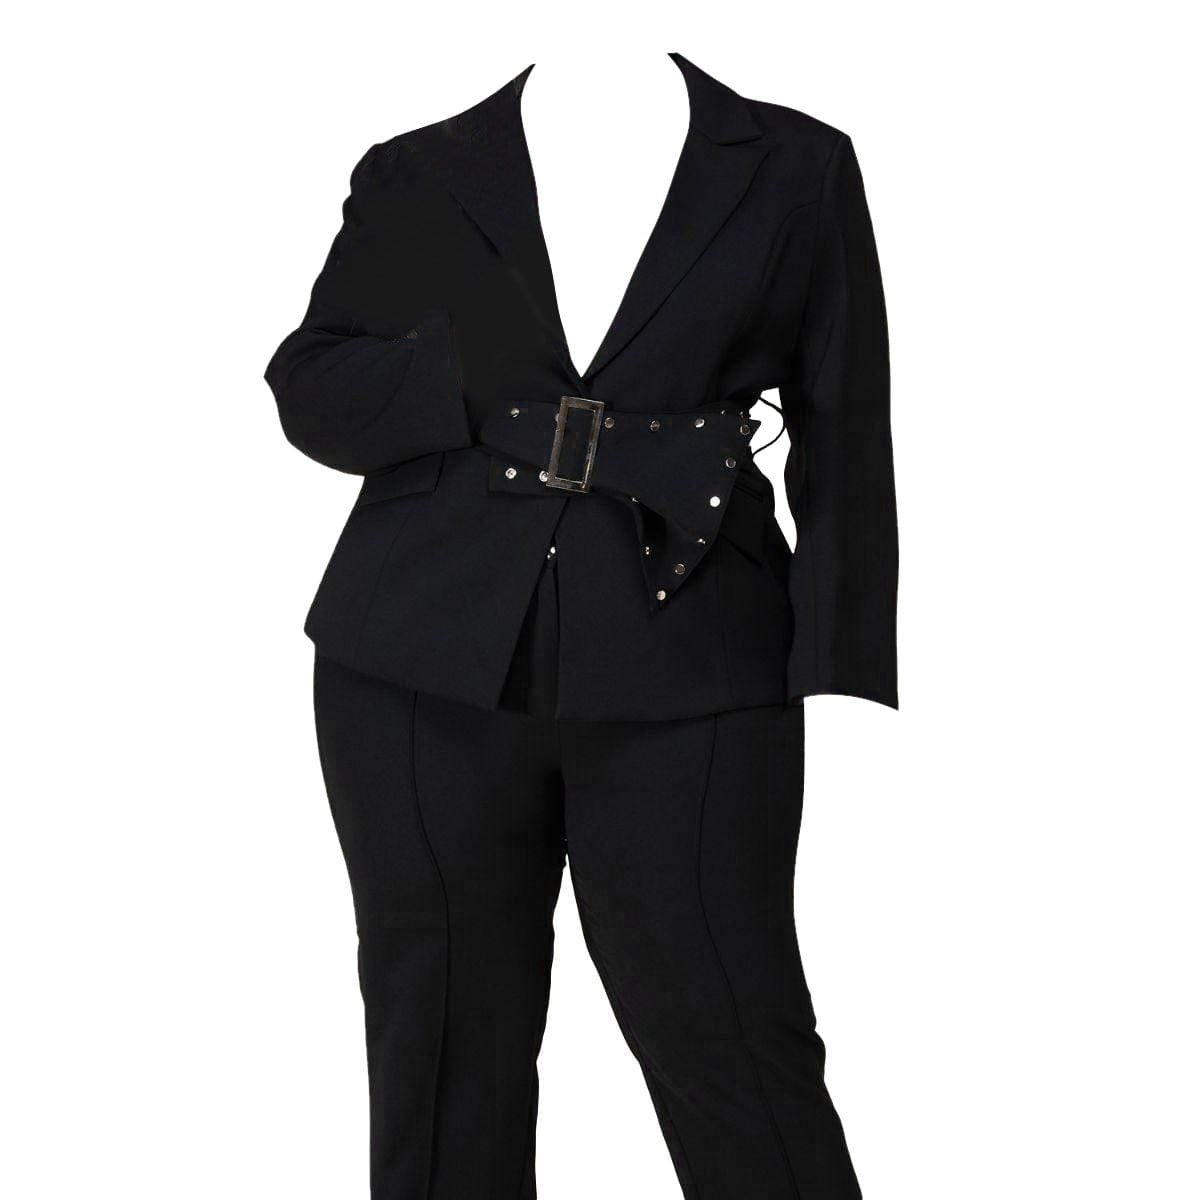 Posh Shoppe: Black Blazer Pant Set Bottoms